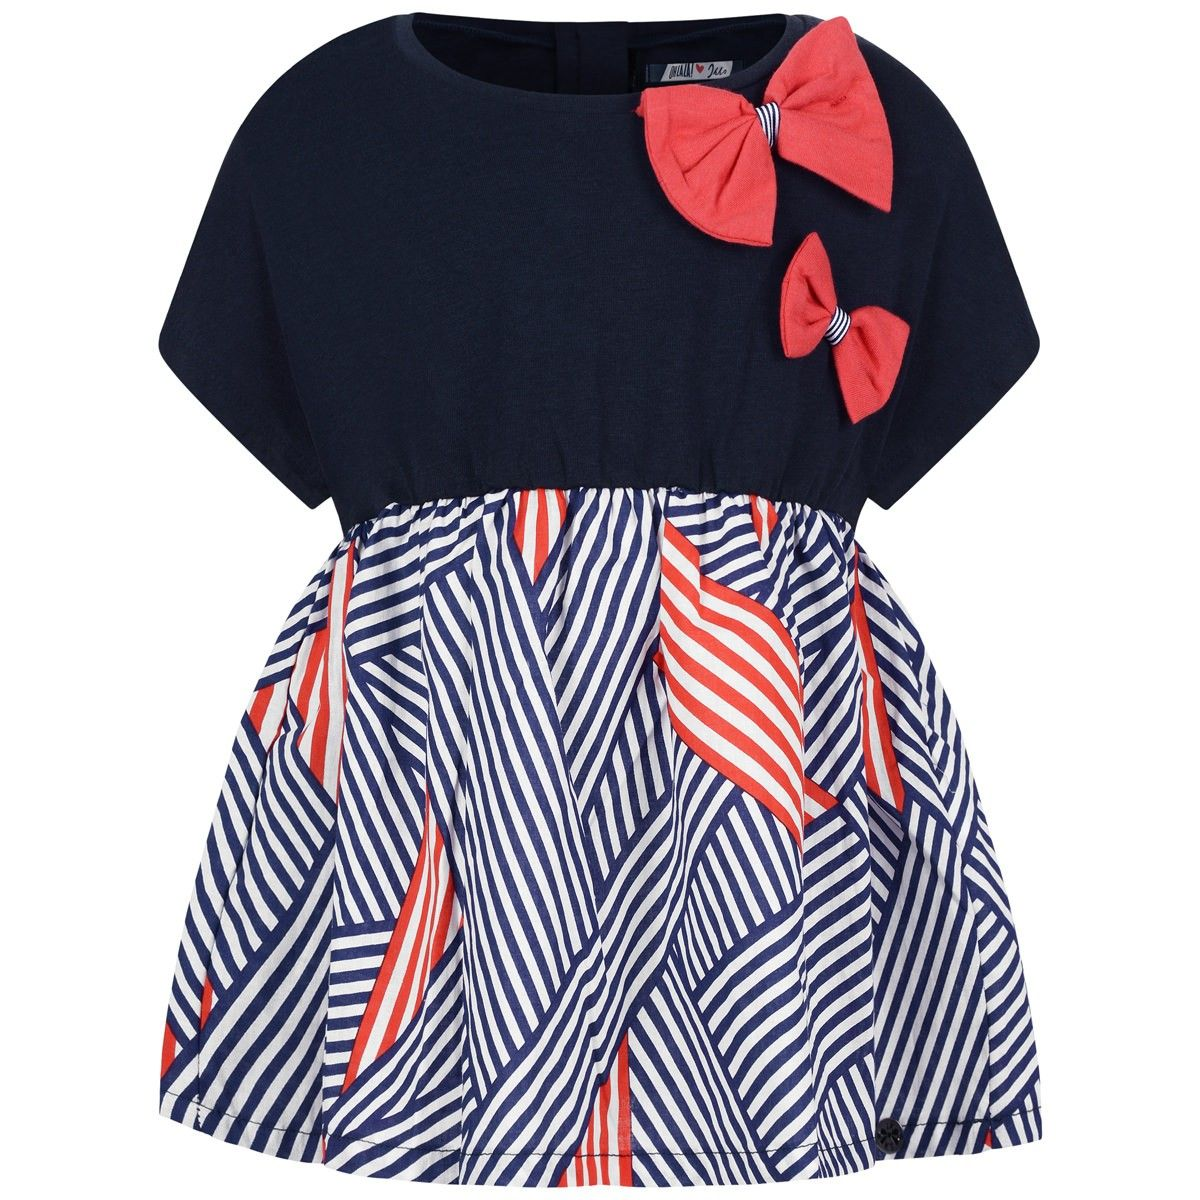 IKKS Girls Navy   Red Bow Blouse  4c9ddc3a99b65